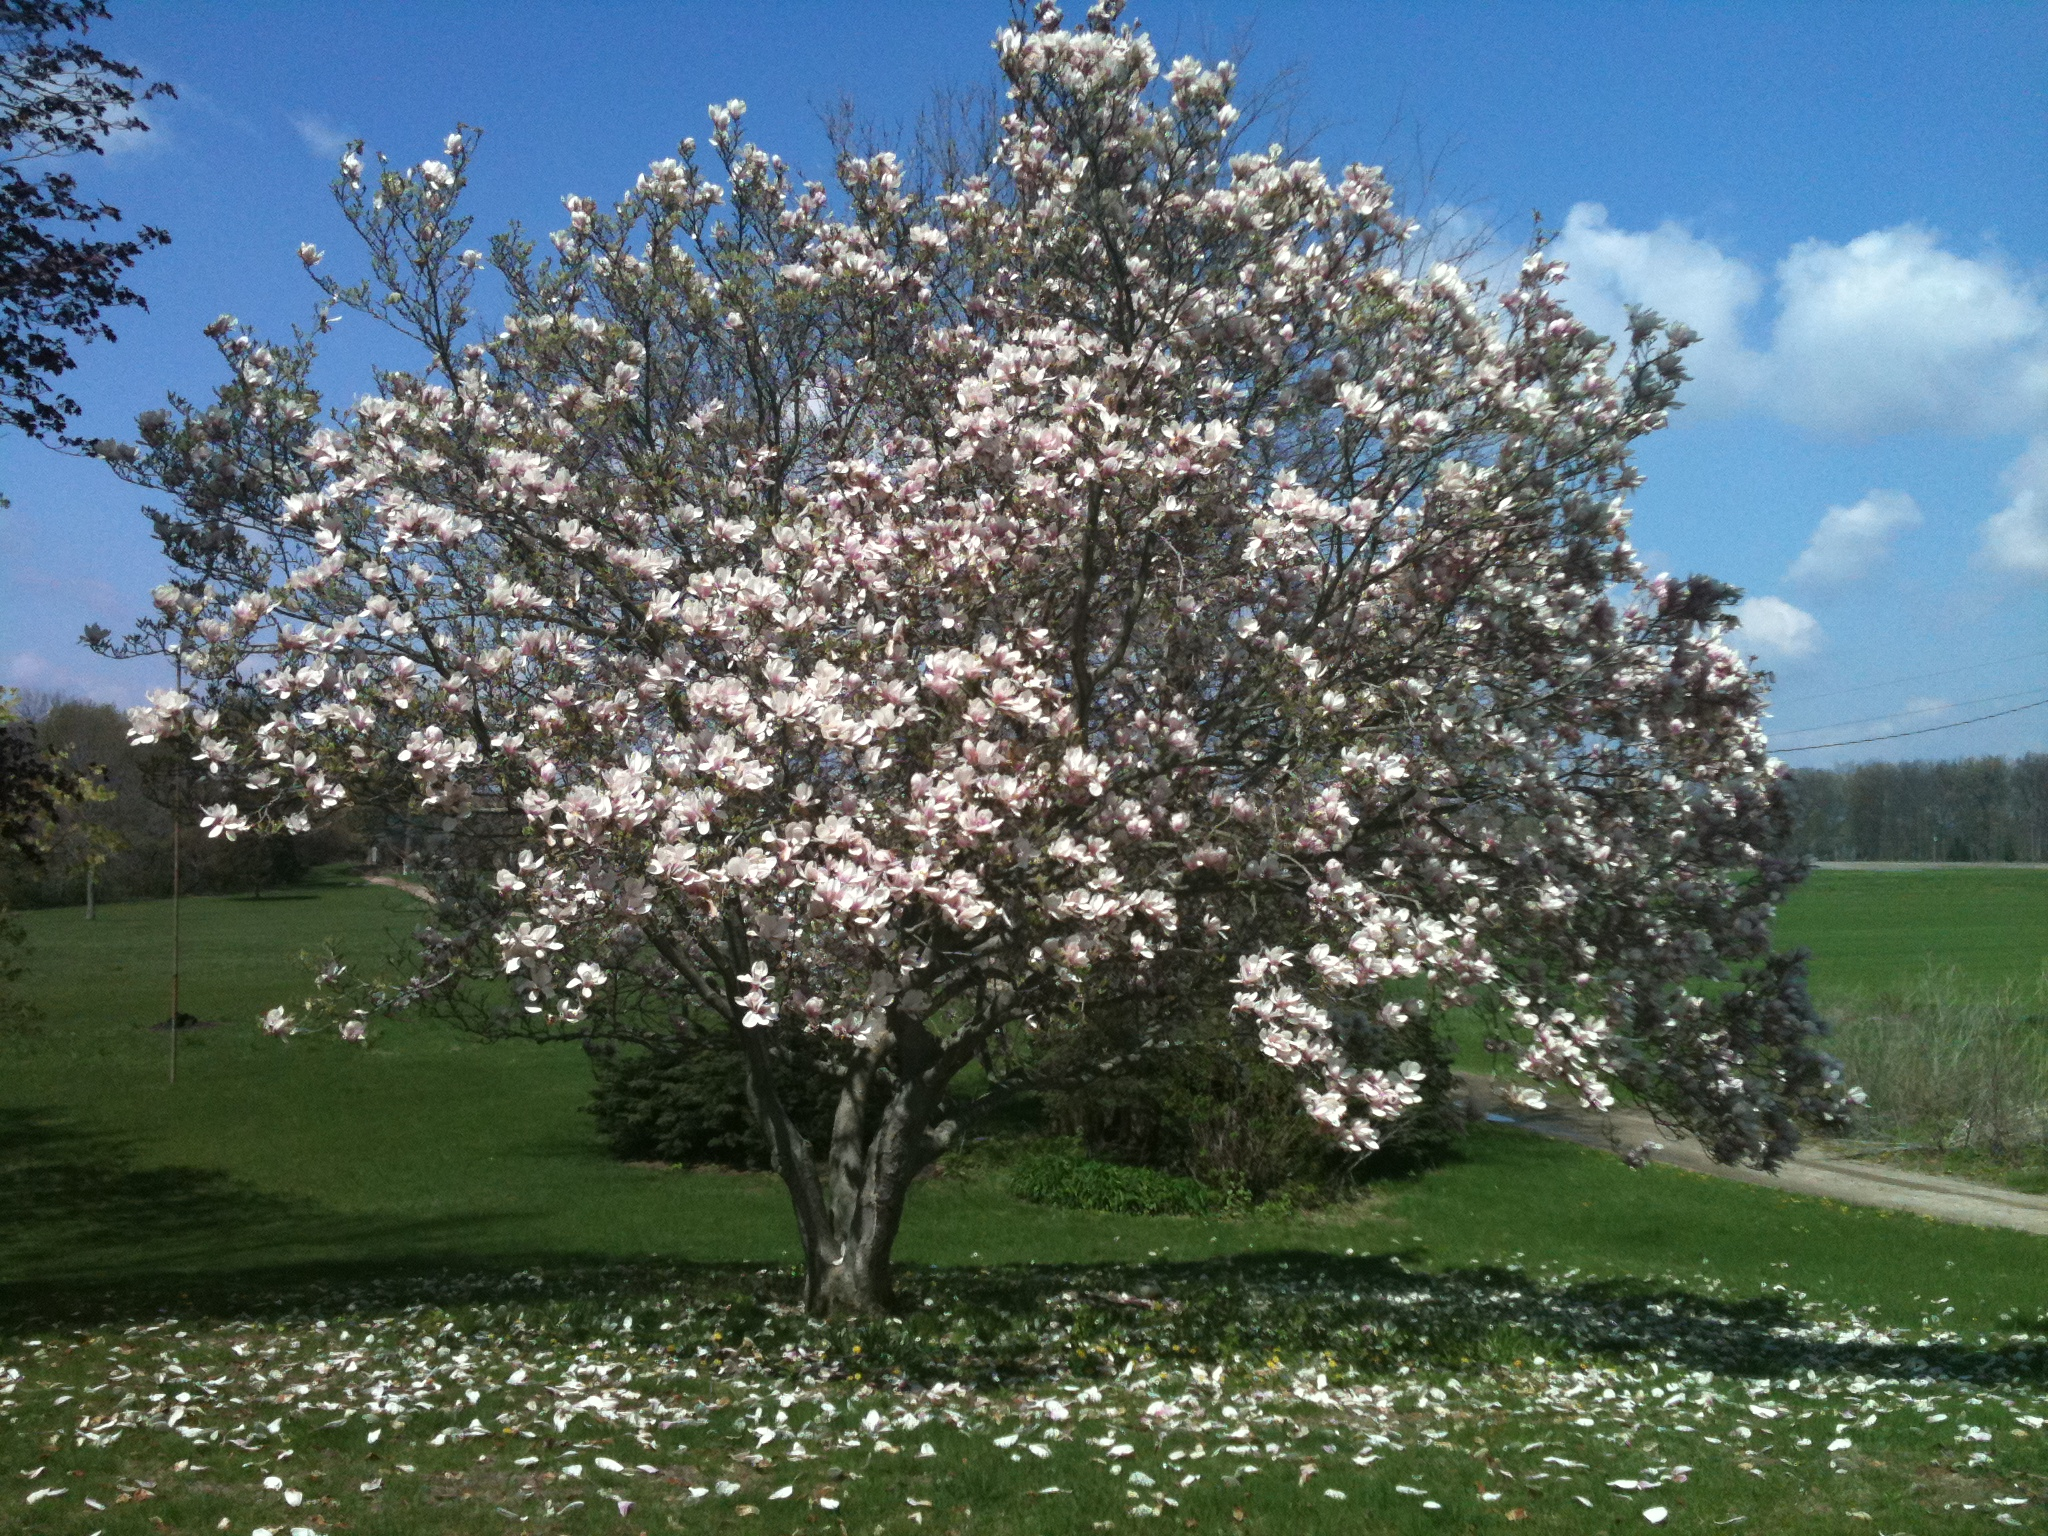 Napowrimo day 22 39 magnolia tree 39 the worlds of nathan for Magnolia tree